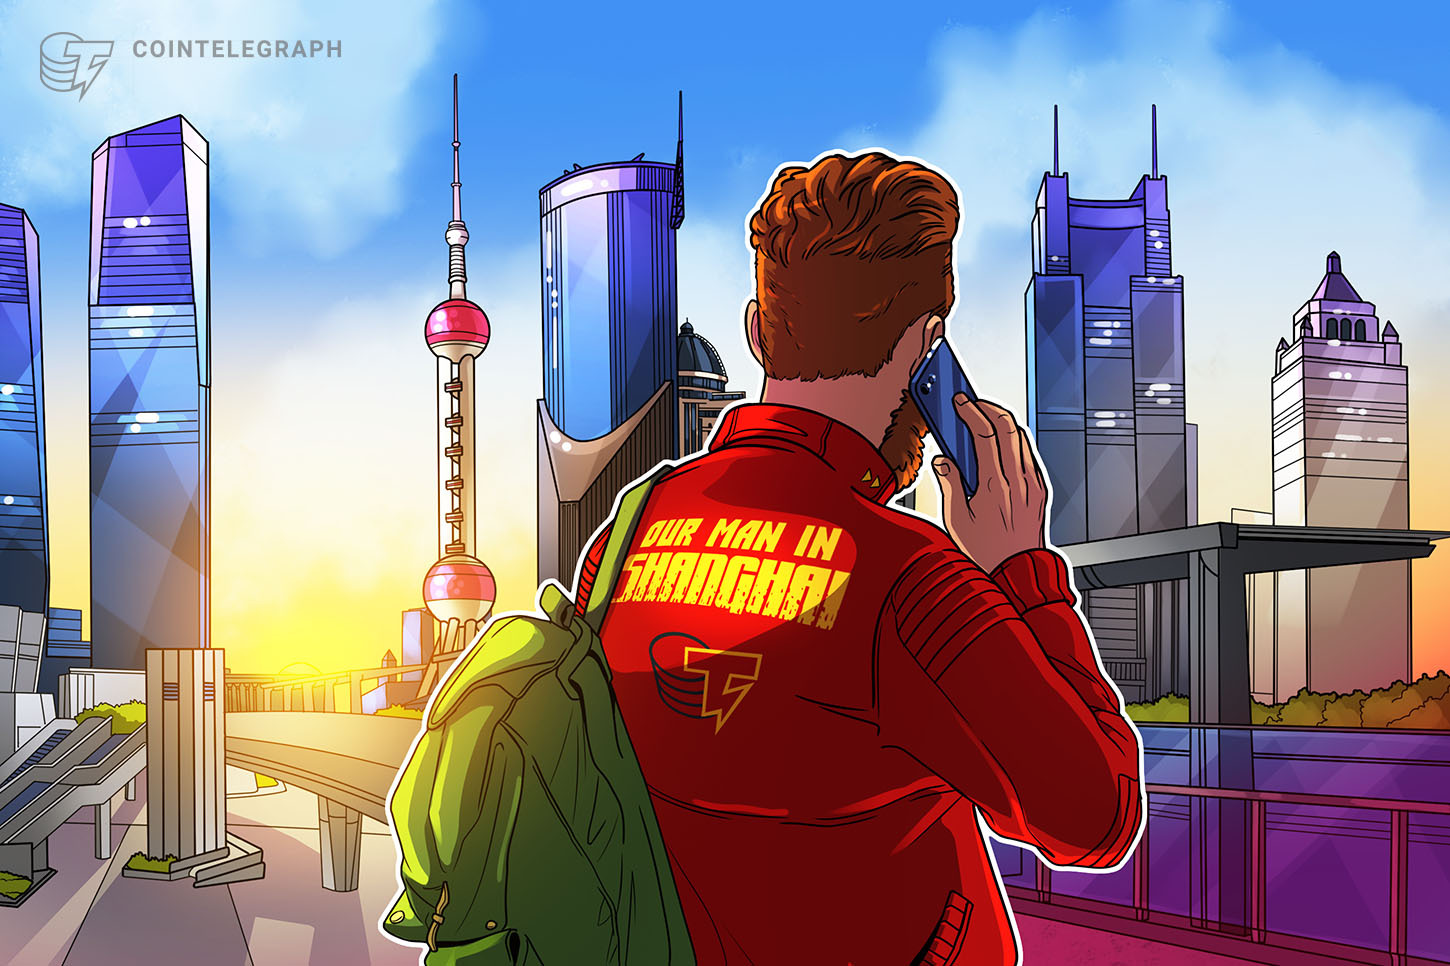 Shanghai Man: Blockchain Week with Vitalik still happening, 'Bitcoin' searches on WeChat hit 26M in a day